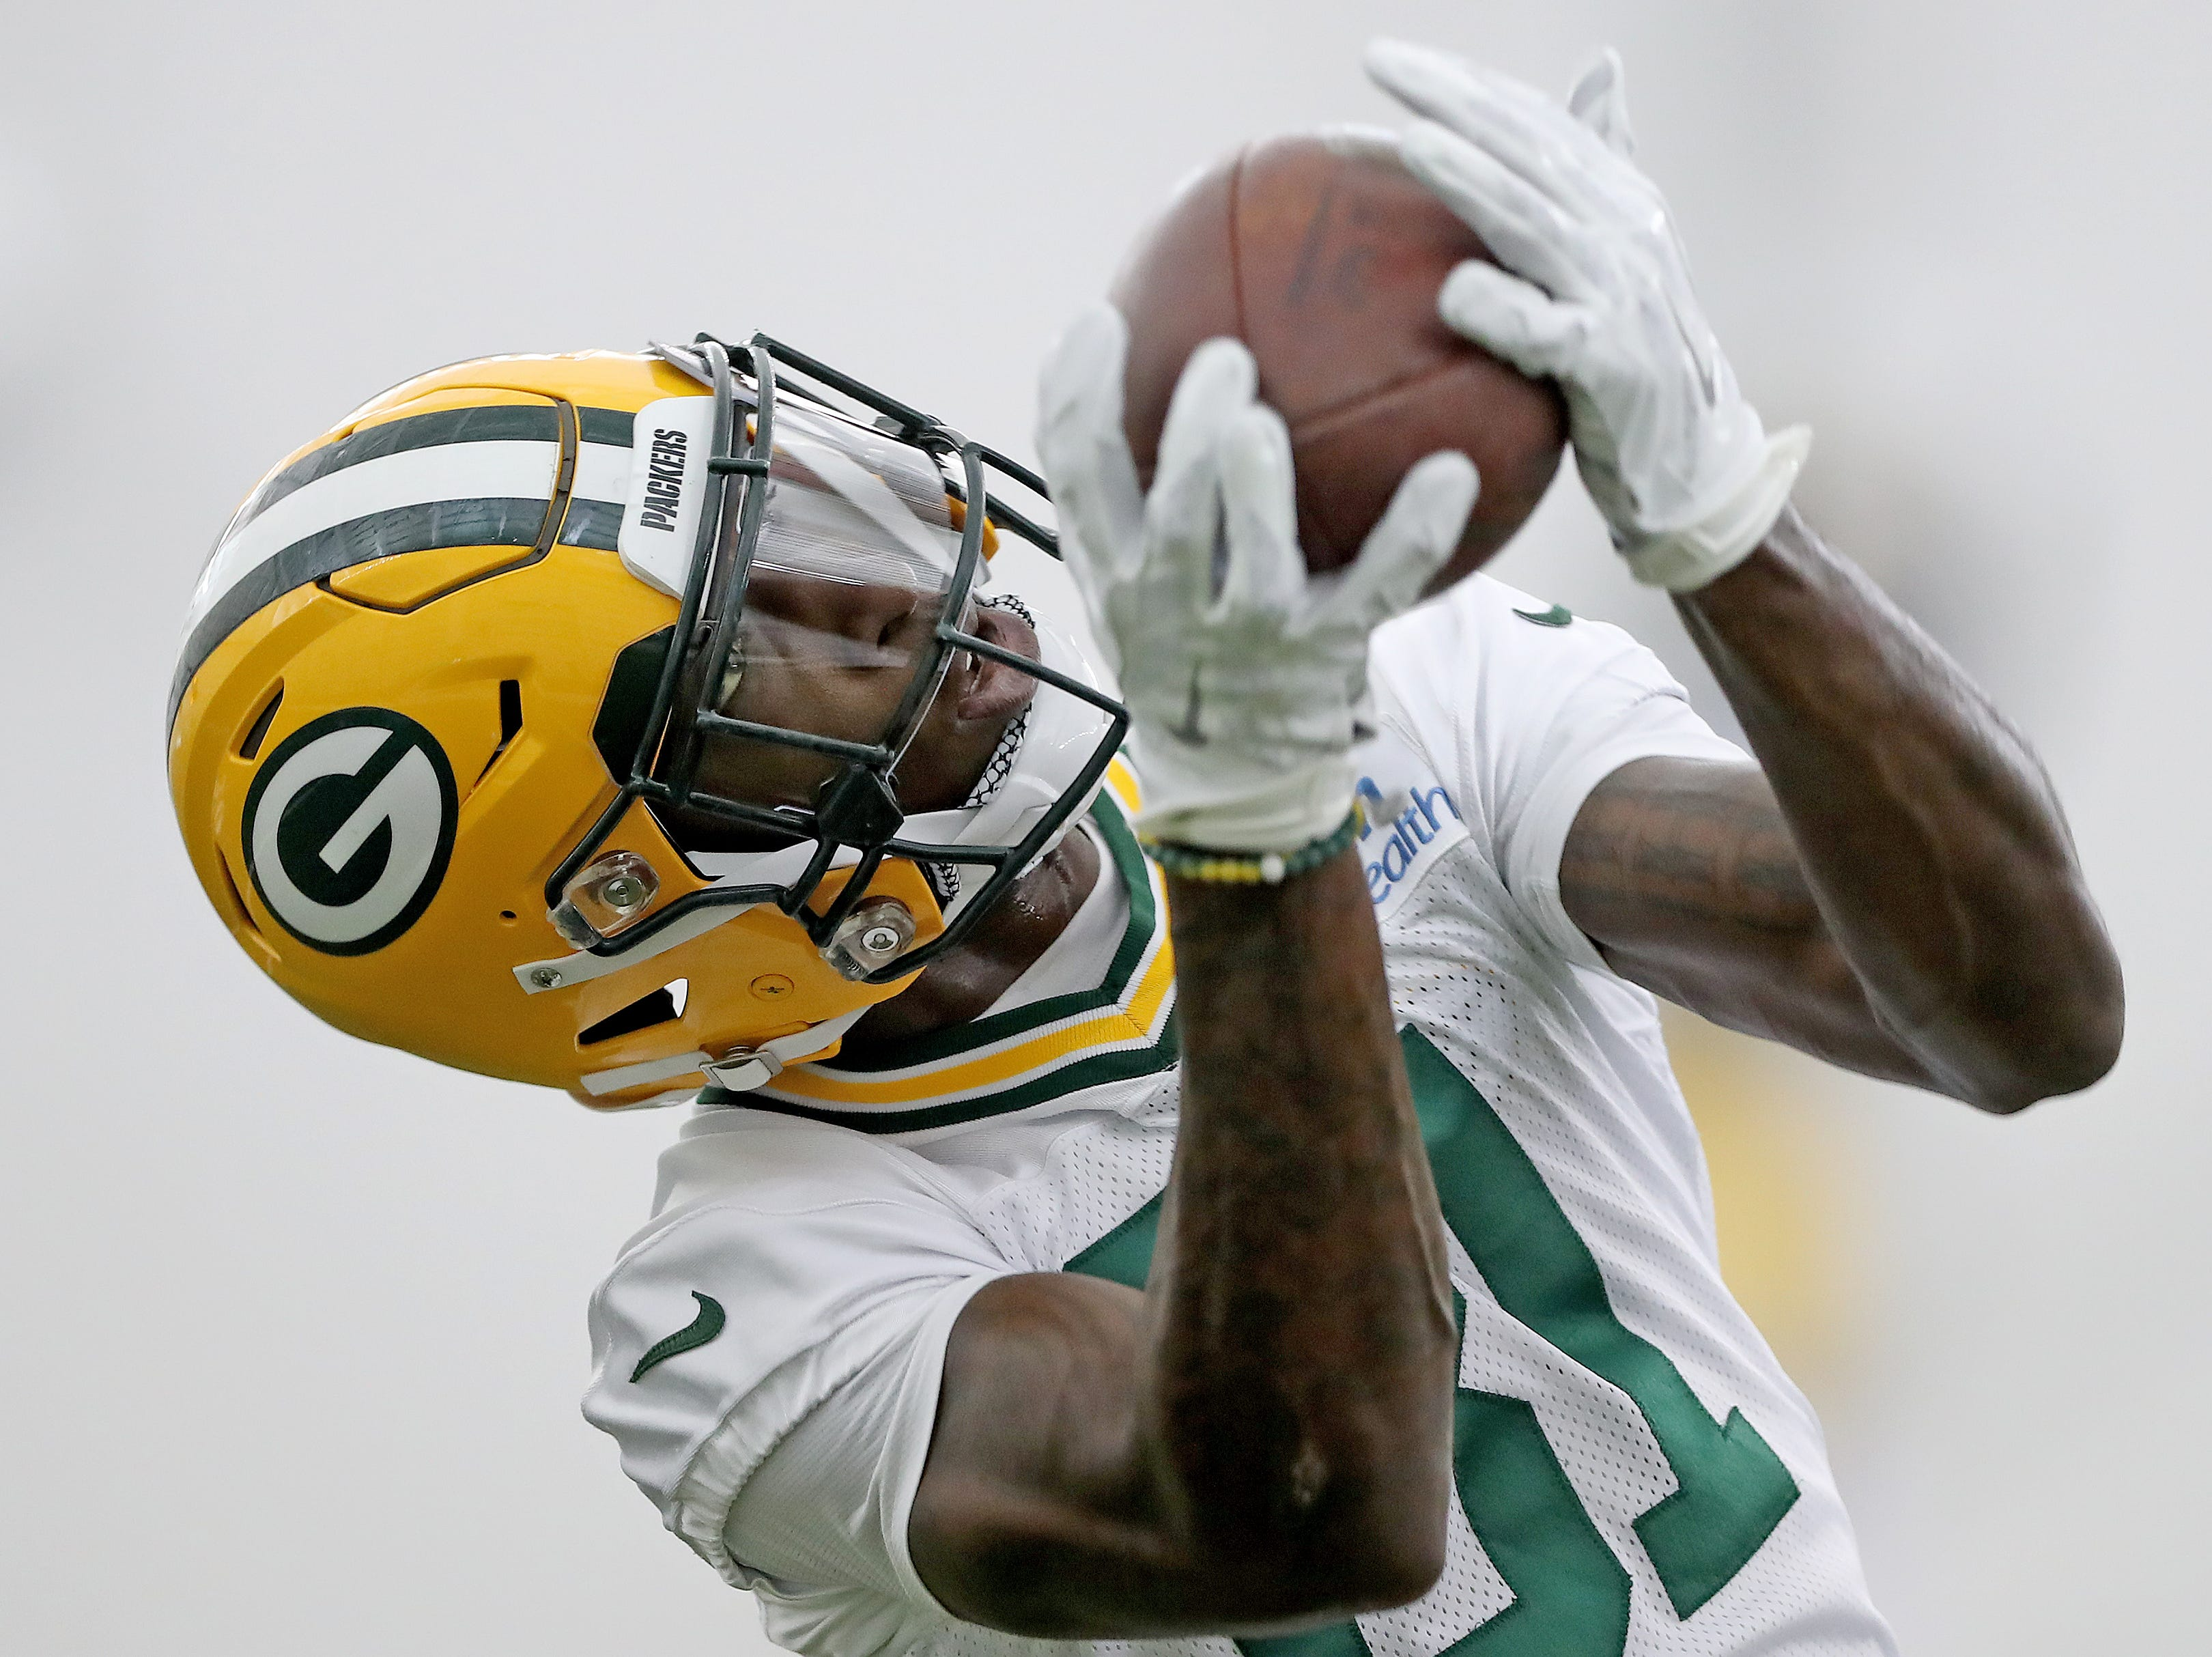 Green Bay Packers wide receiver Geronimo Allison (81) during Packers practice in the Don Hutson Center Monday, September 3, 2018 in Ashwaubenon, Wis